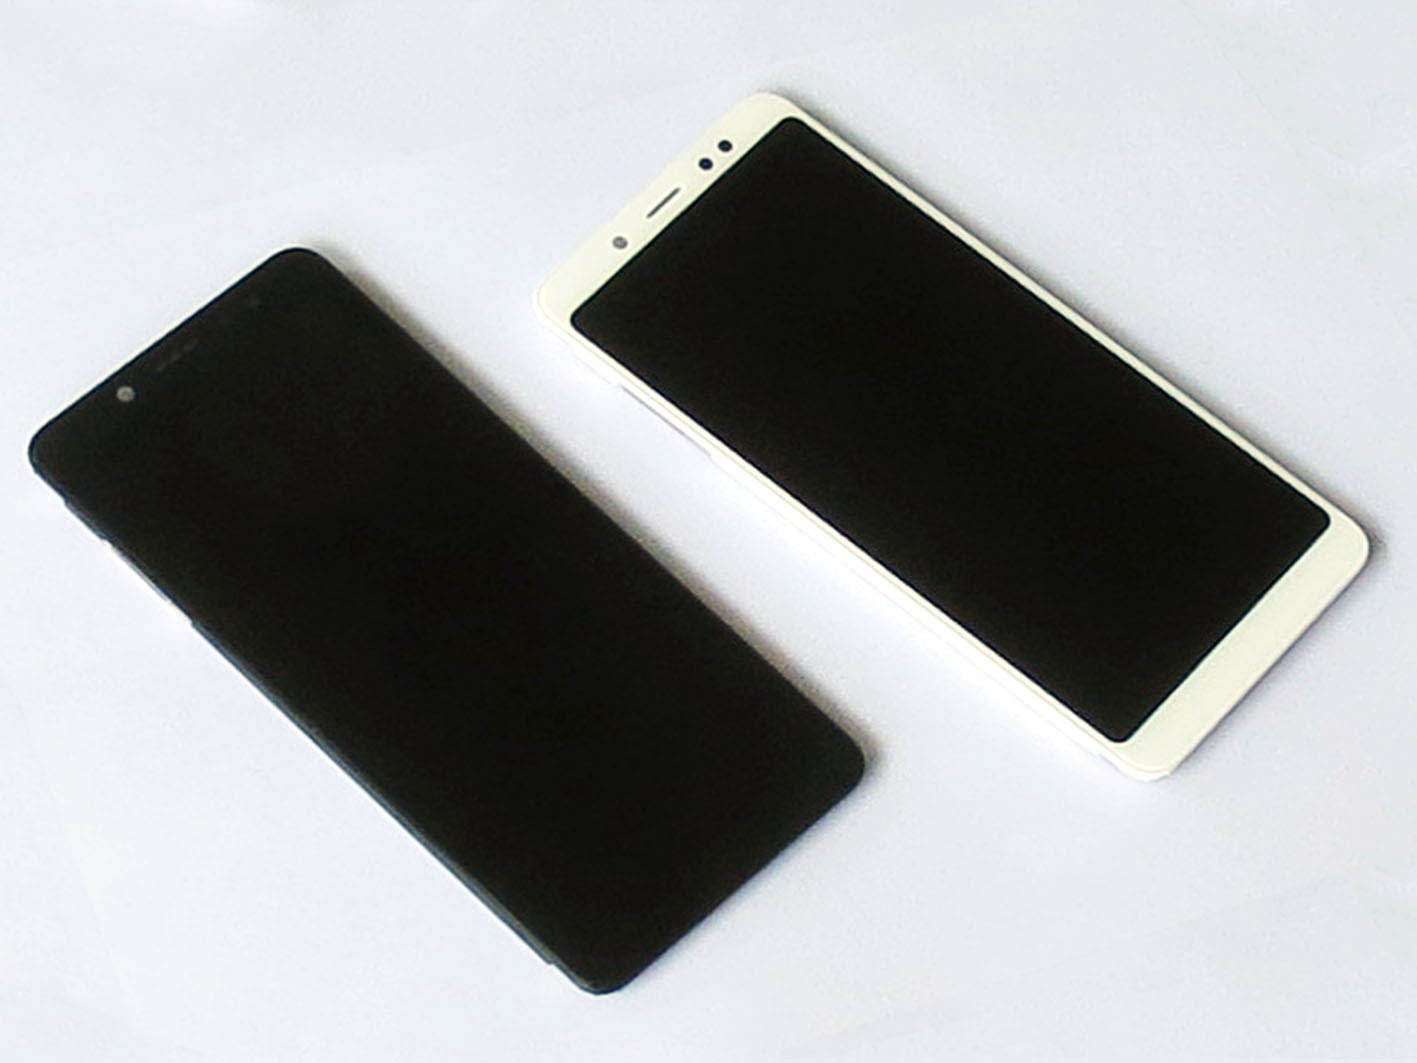 Digitizer Touch Screen for HTC Droid DNA (Verizon Version)